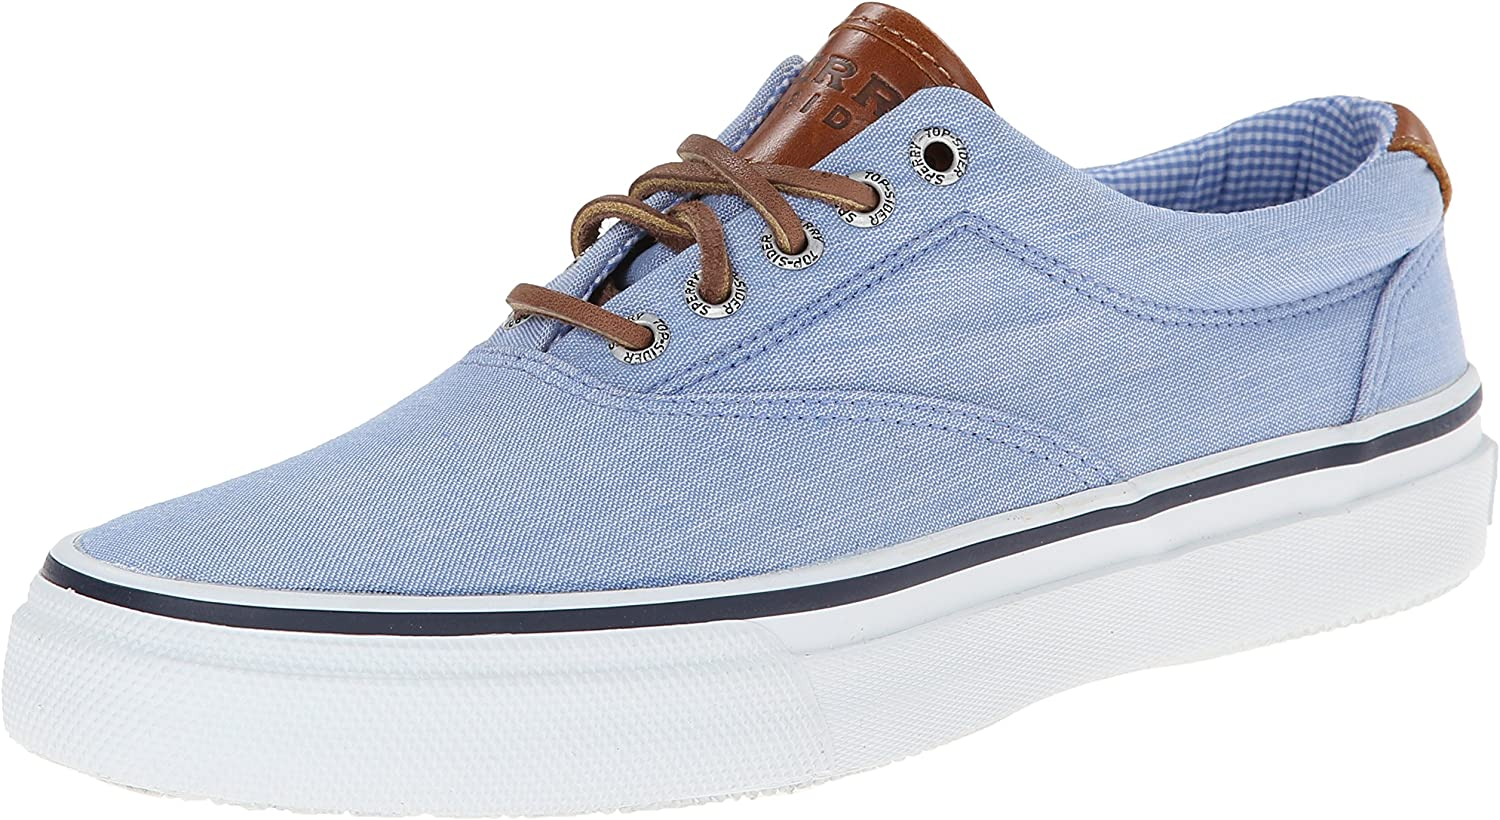 Sperry Top-Sider Striper Mens Synthetic Material Canvas shoes bluee